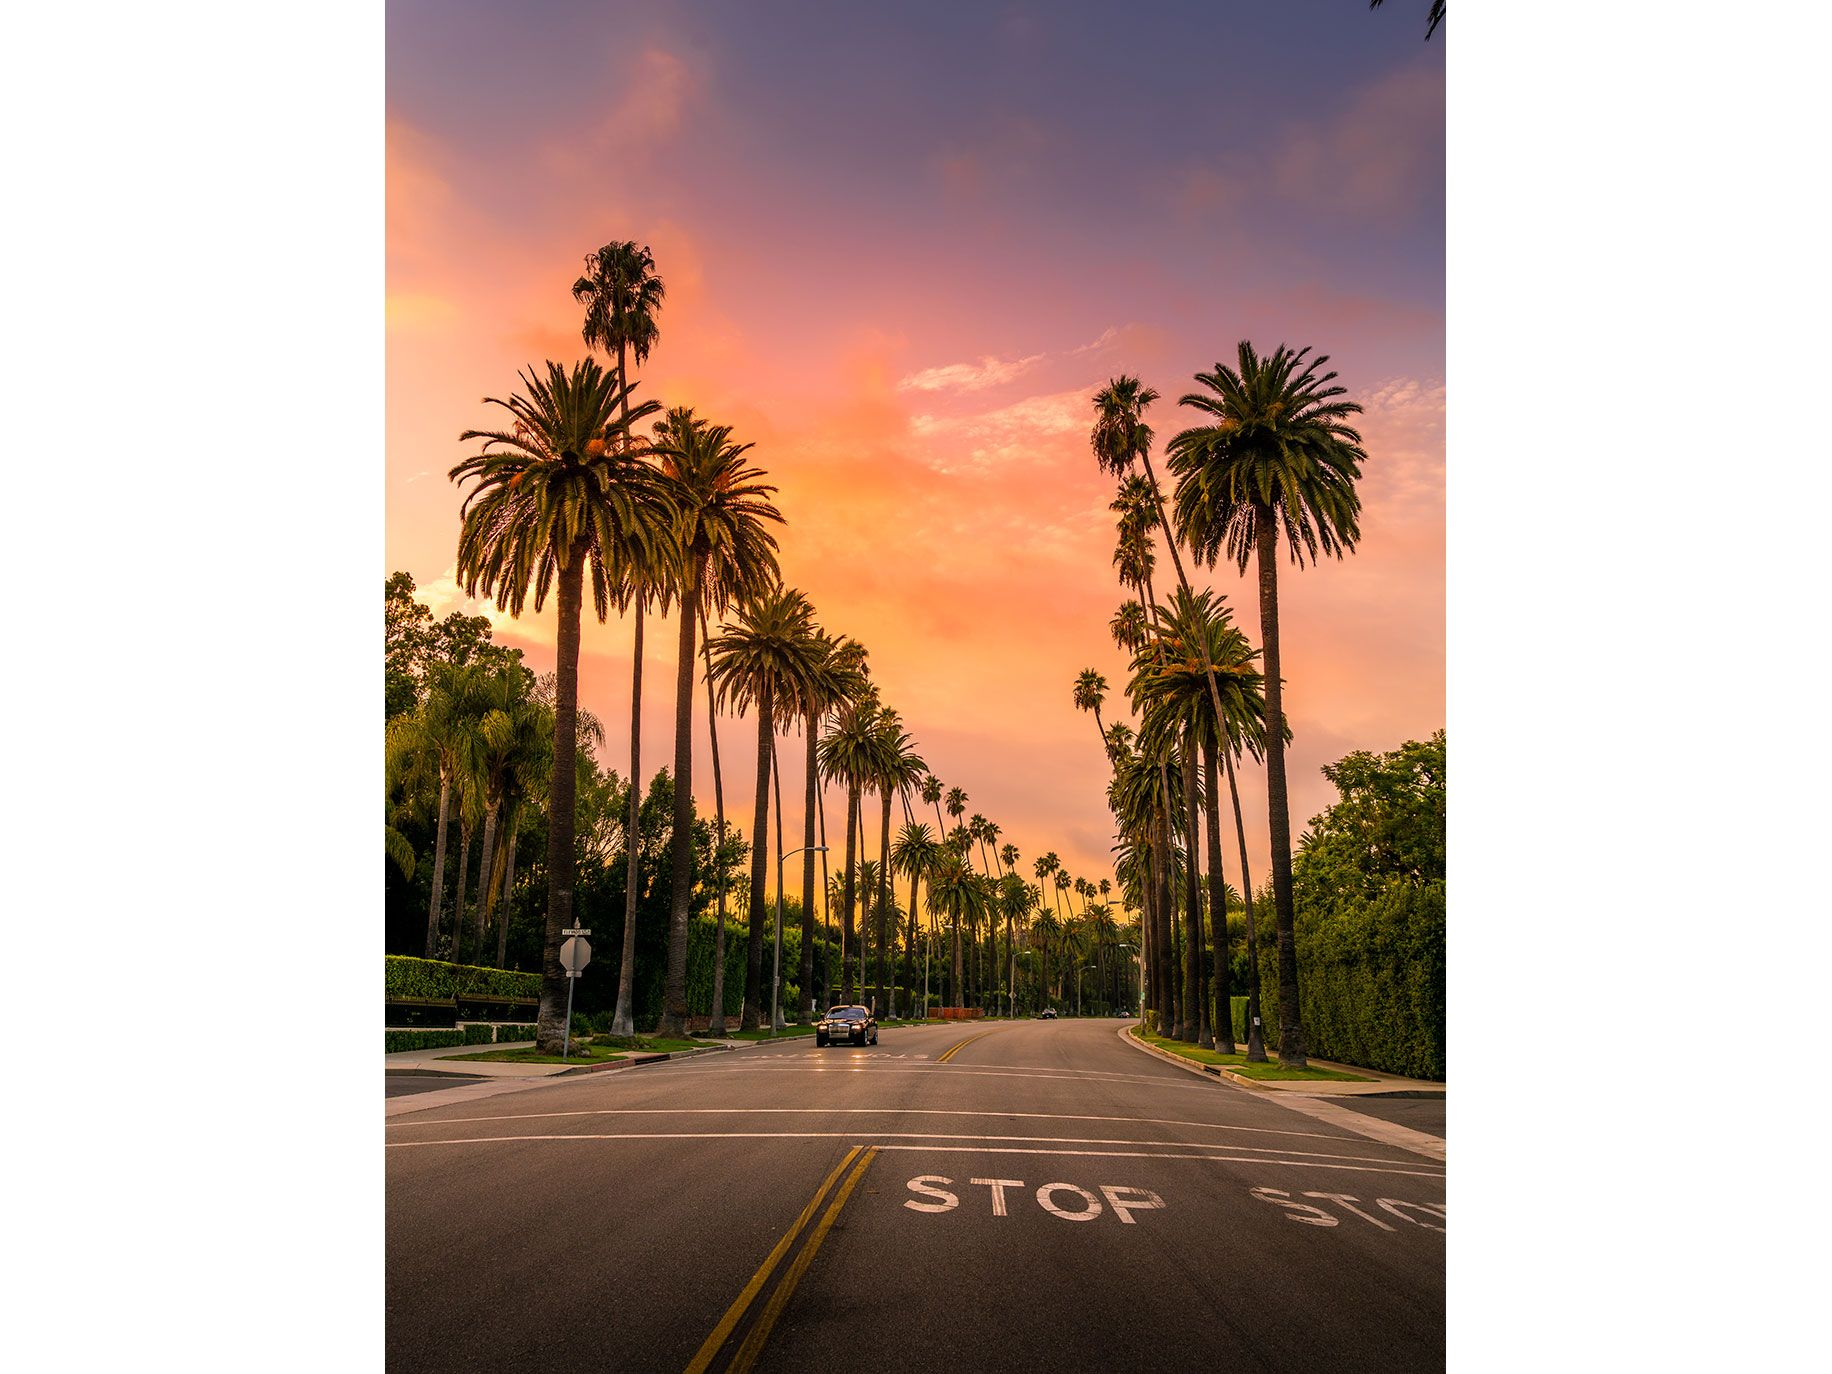 Ramelli loves Beverly Hills because there are no cars on the side of the streets and the palm trees give you an incredible leading line.